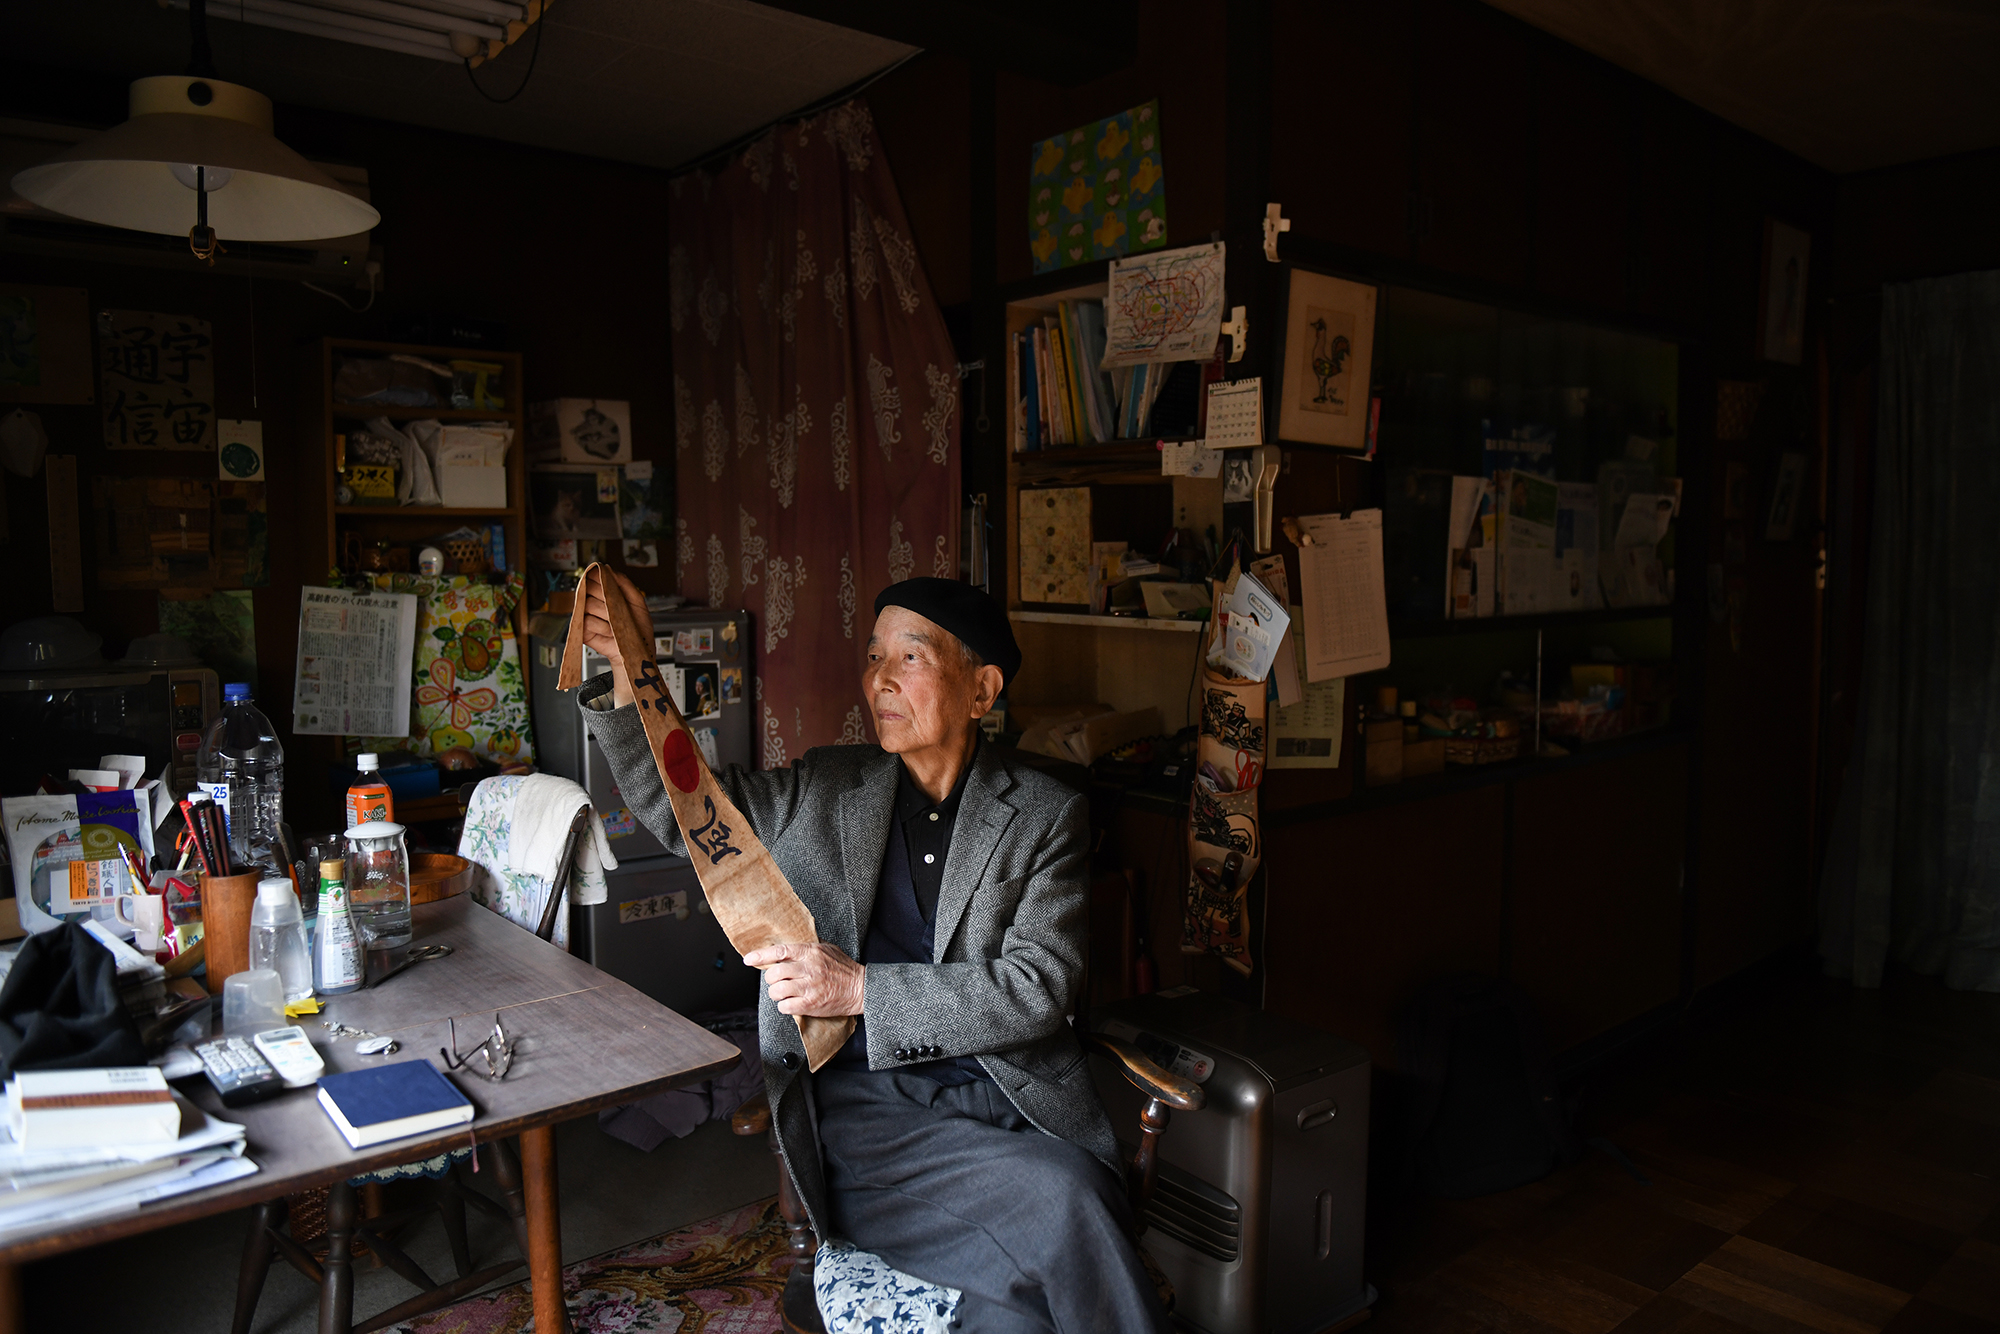 Portraits of Katsumoto Saotome_JAPAN1